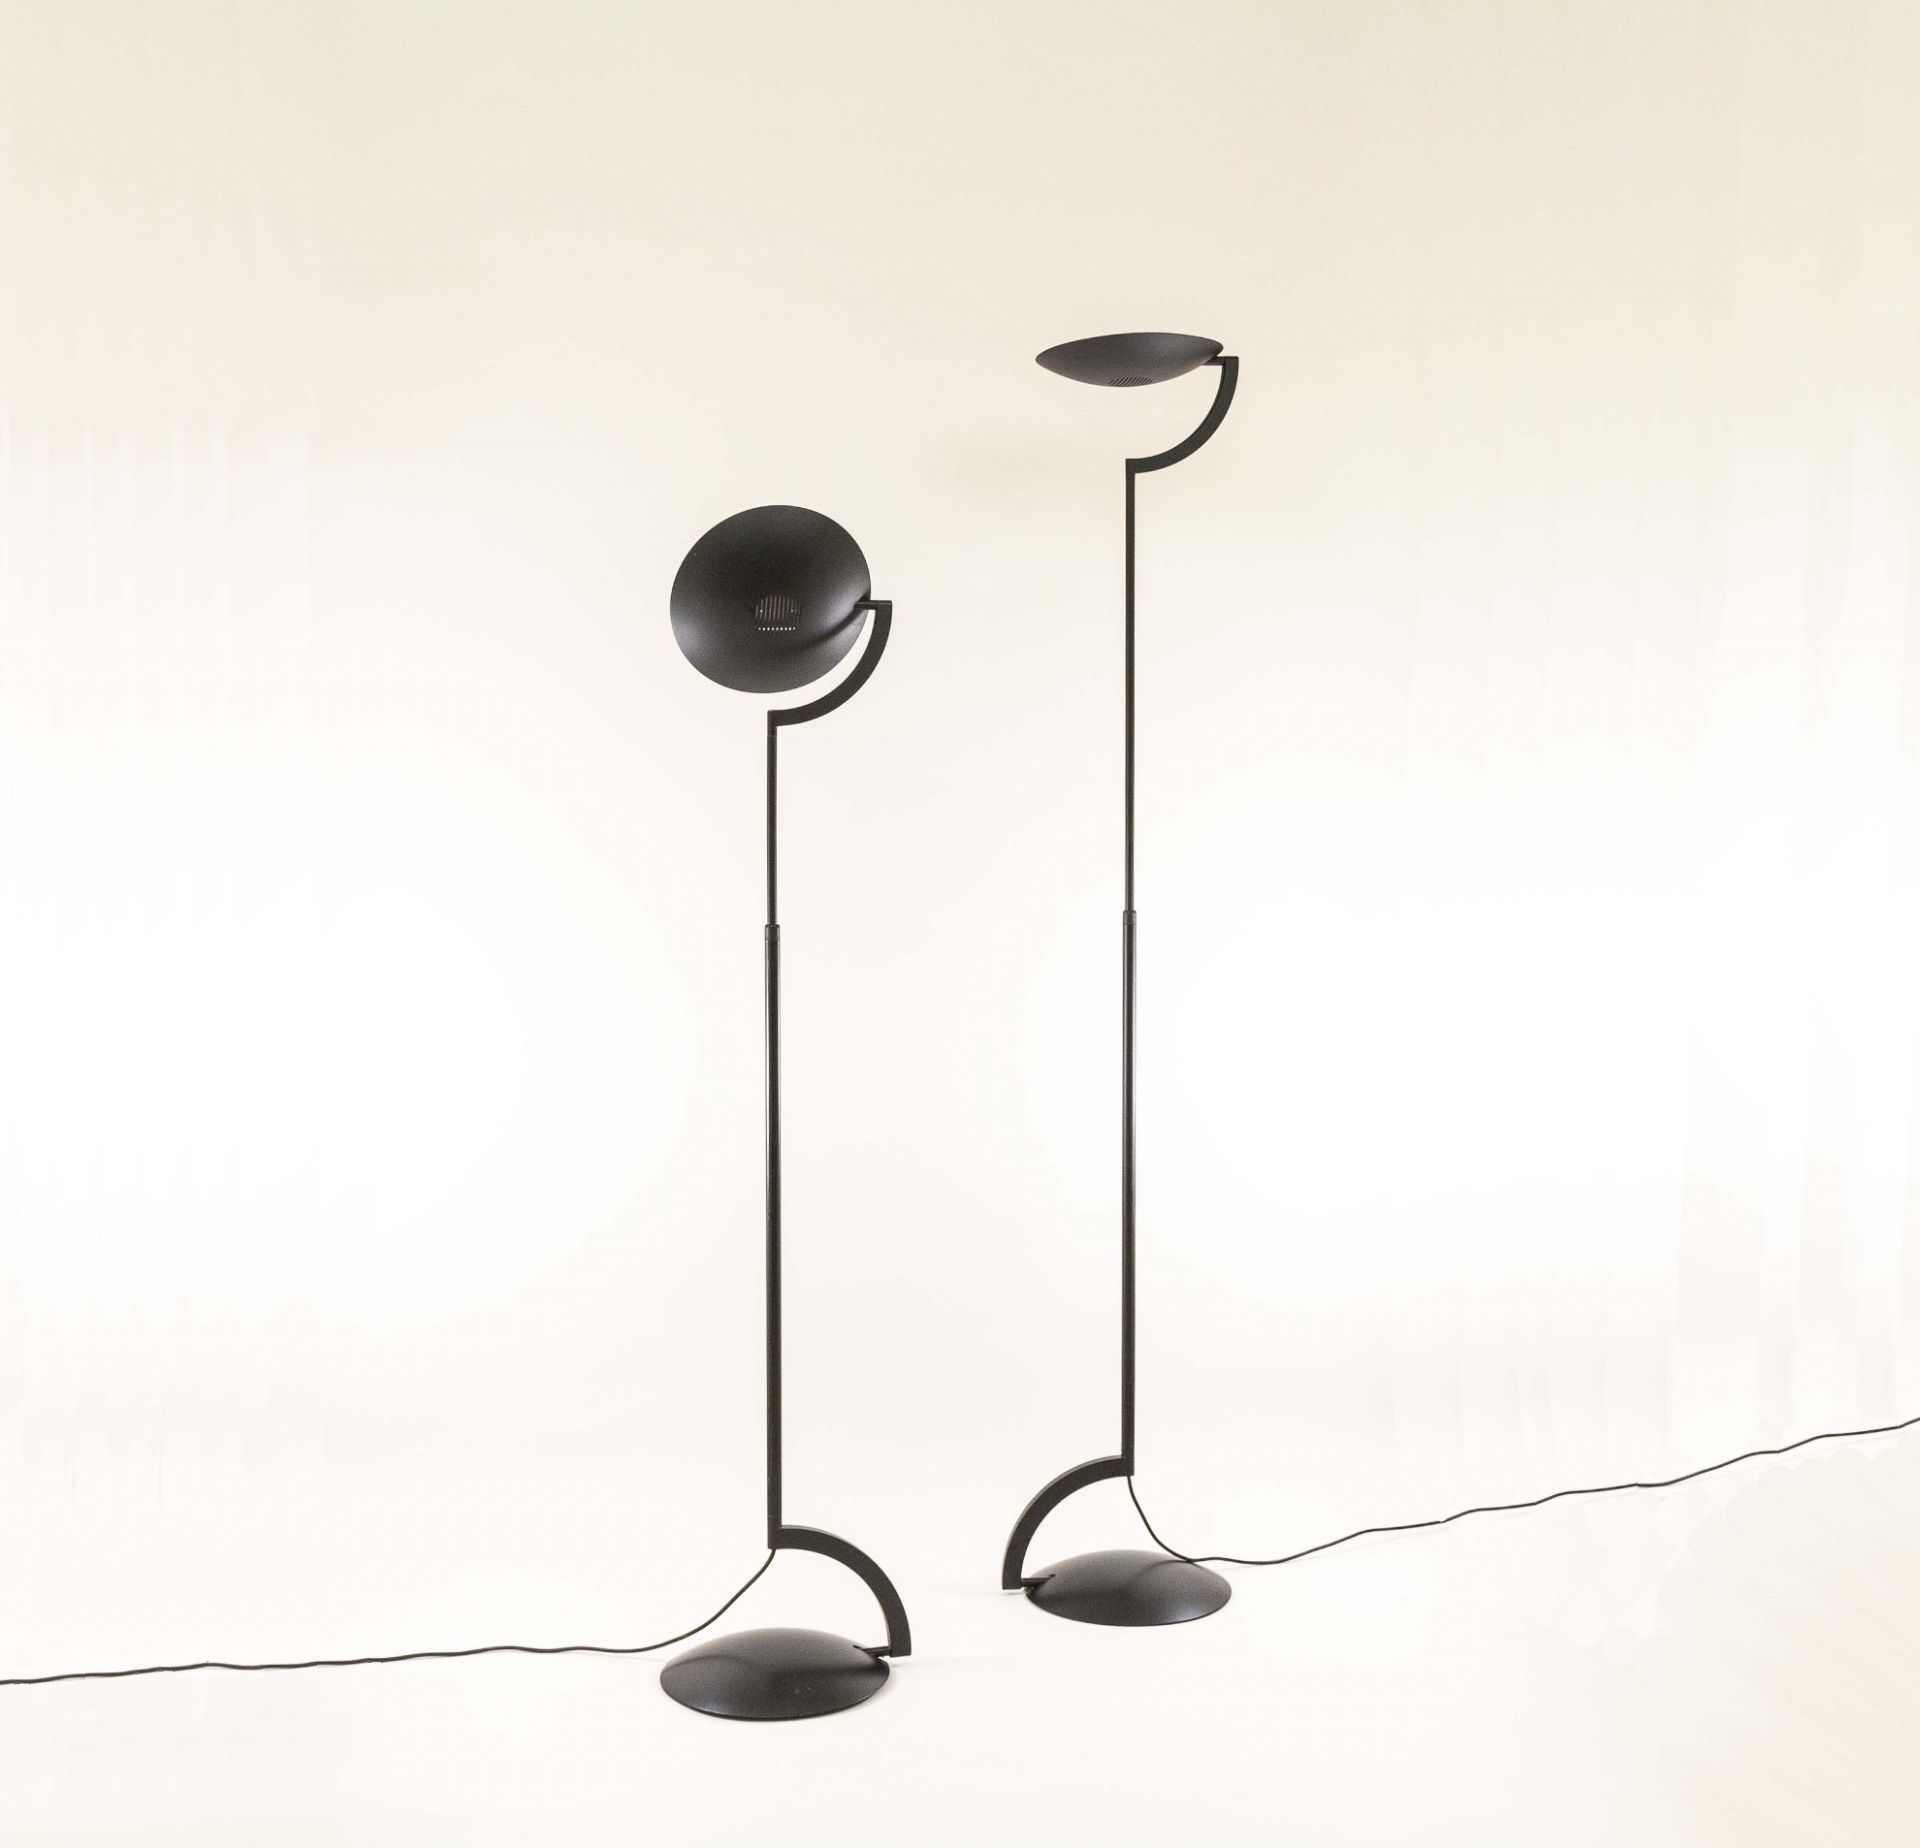 Pair of Eco floor lamps by Mario Barbaglia & Marco Colombo for Italiana Luce